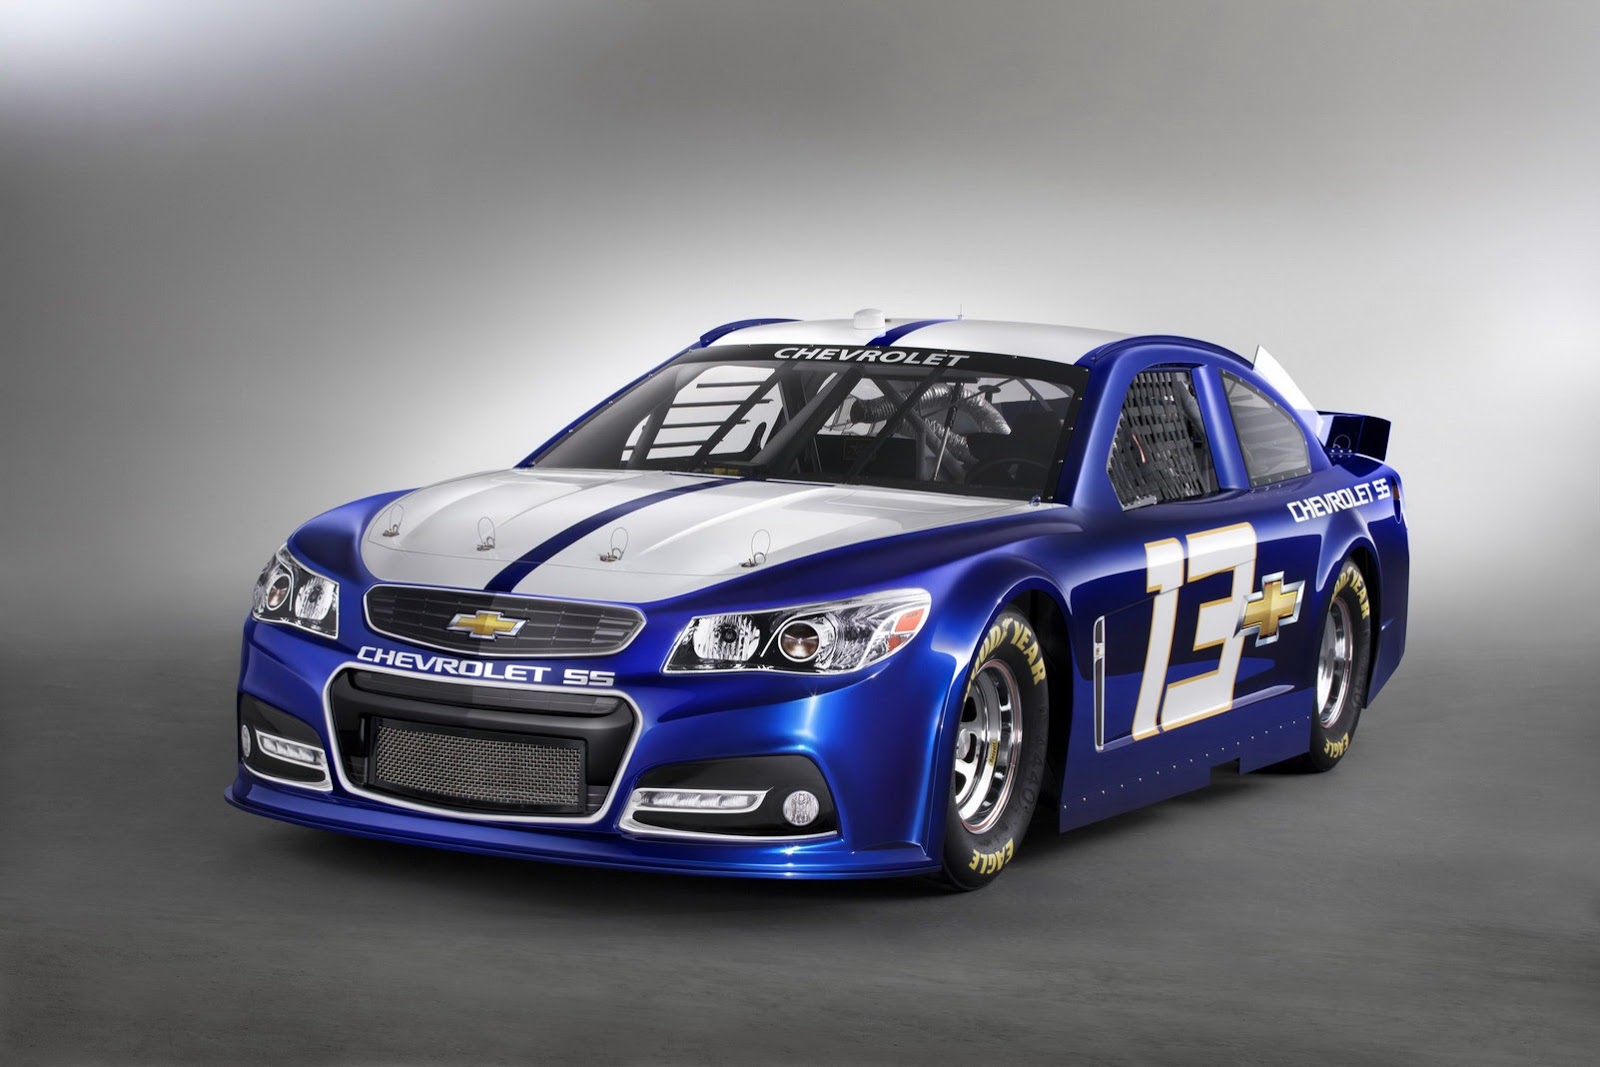 2013-chevrolet-ss-nascar-race-car-revealed-previews-rwd-sedan-photo-gallery_9.jpg